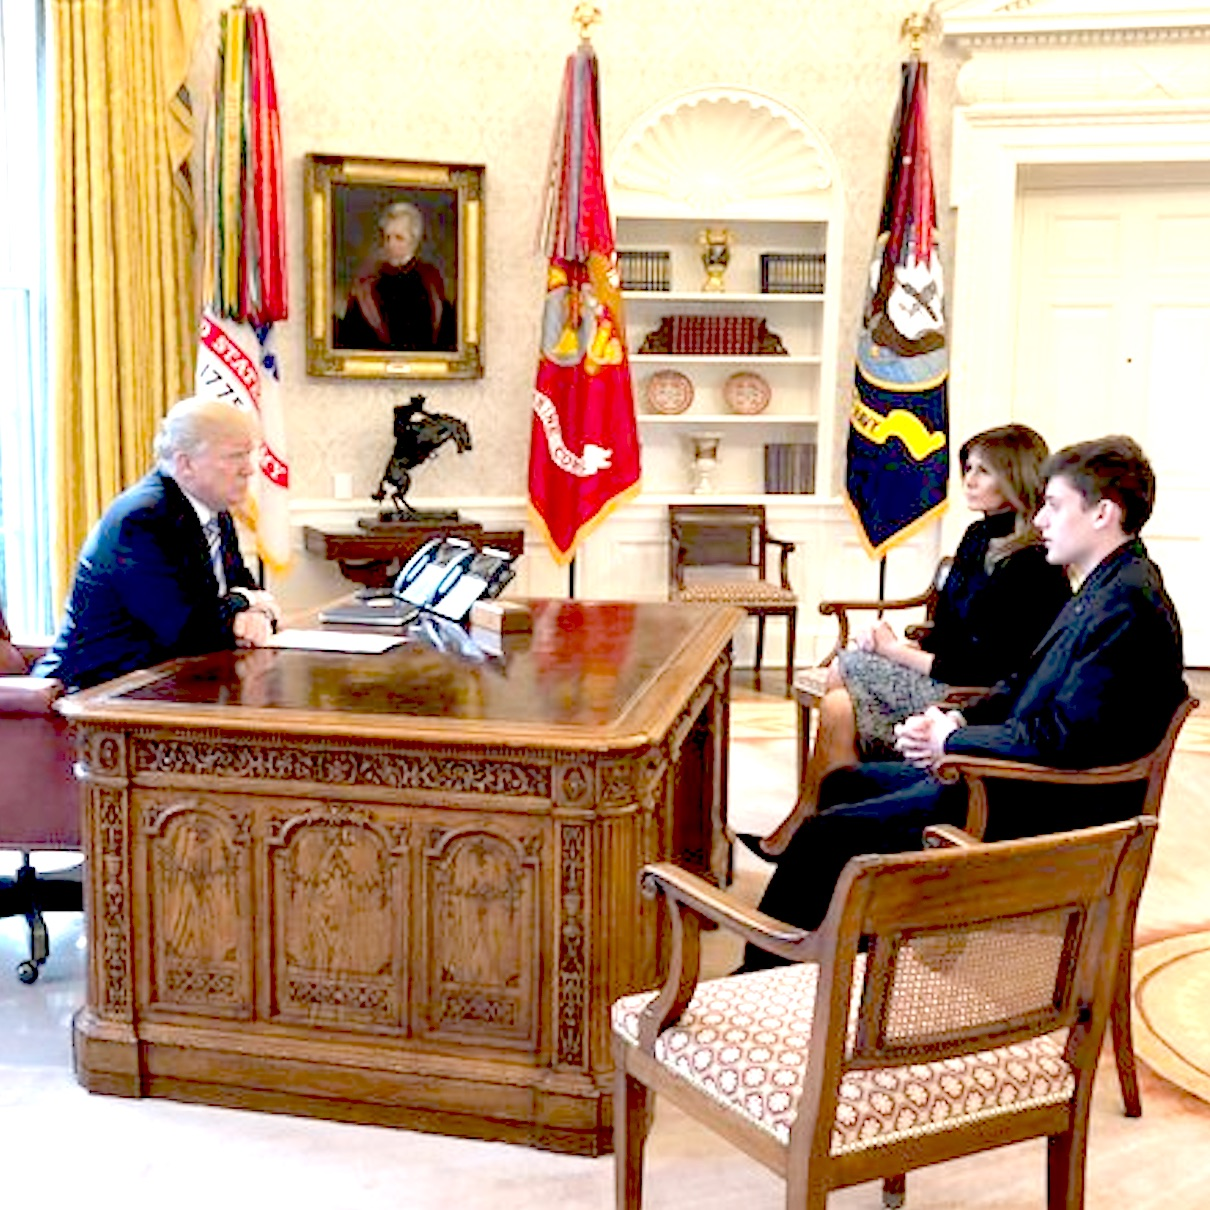 White House photo of Kyle Kashuv meeting with President Trump and First Lady Melania.